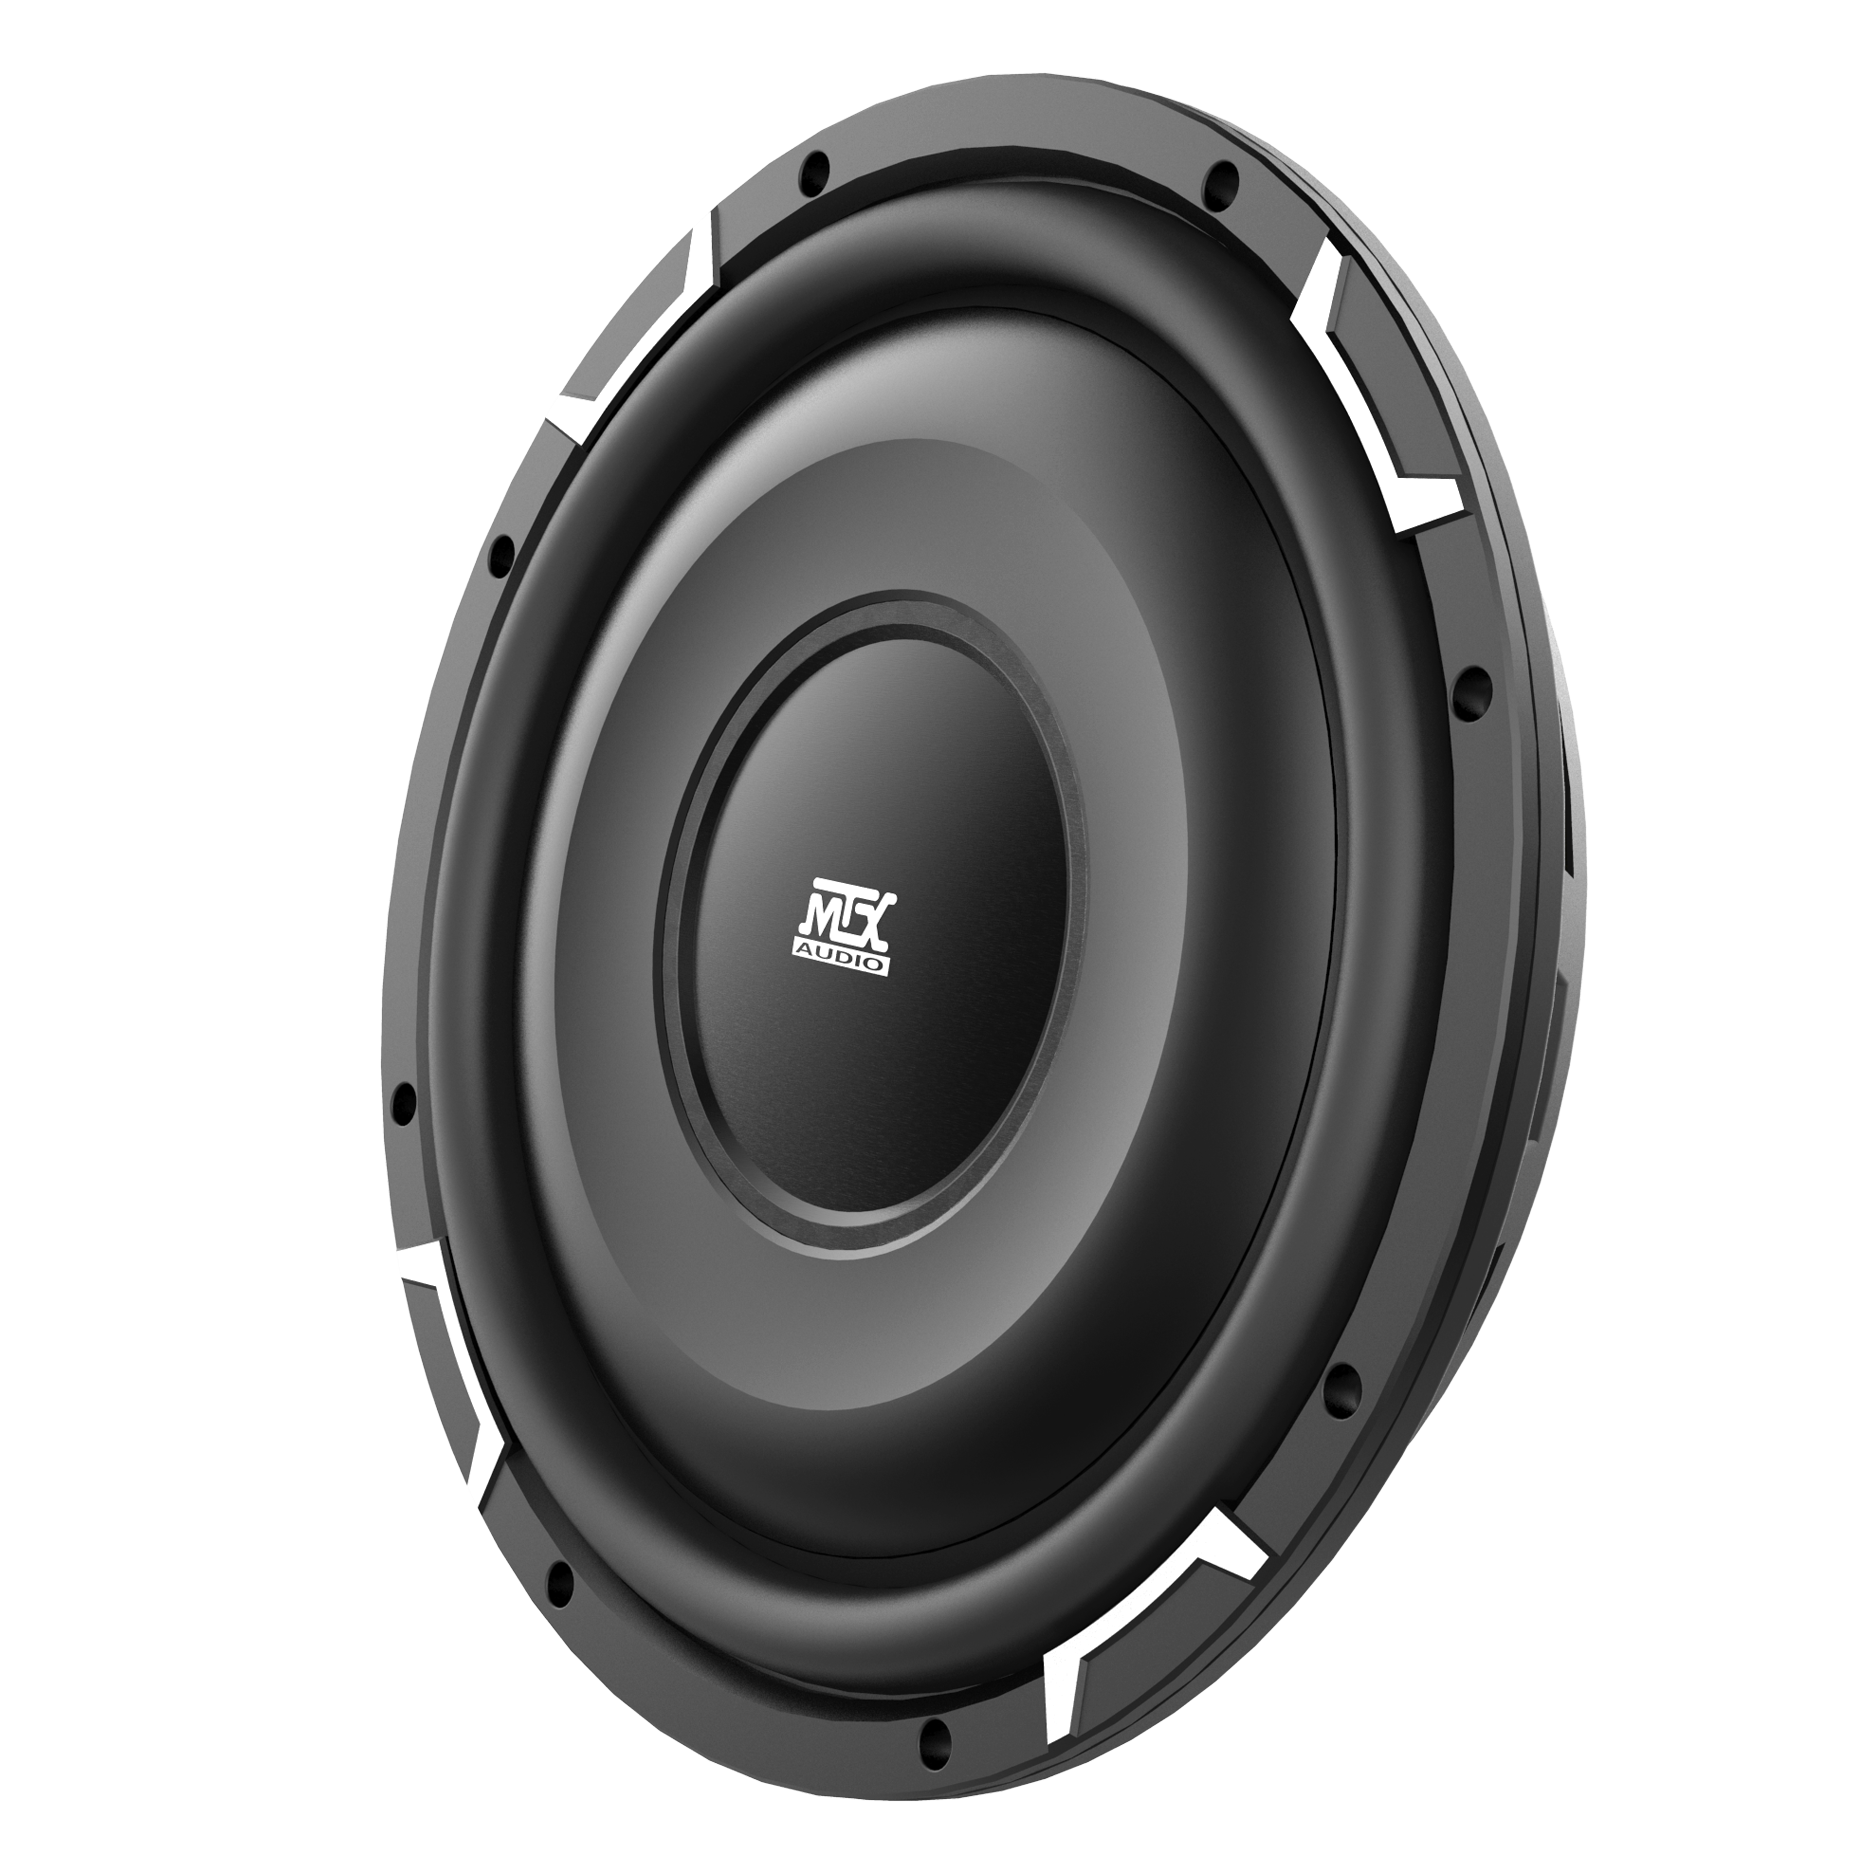 car subwoofers mtx audio serious about sound® fpr12 02 shallow mount car subwoofer front angle